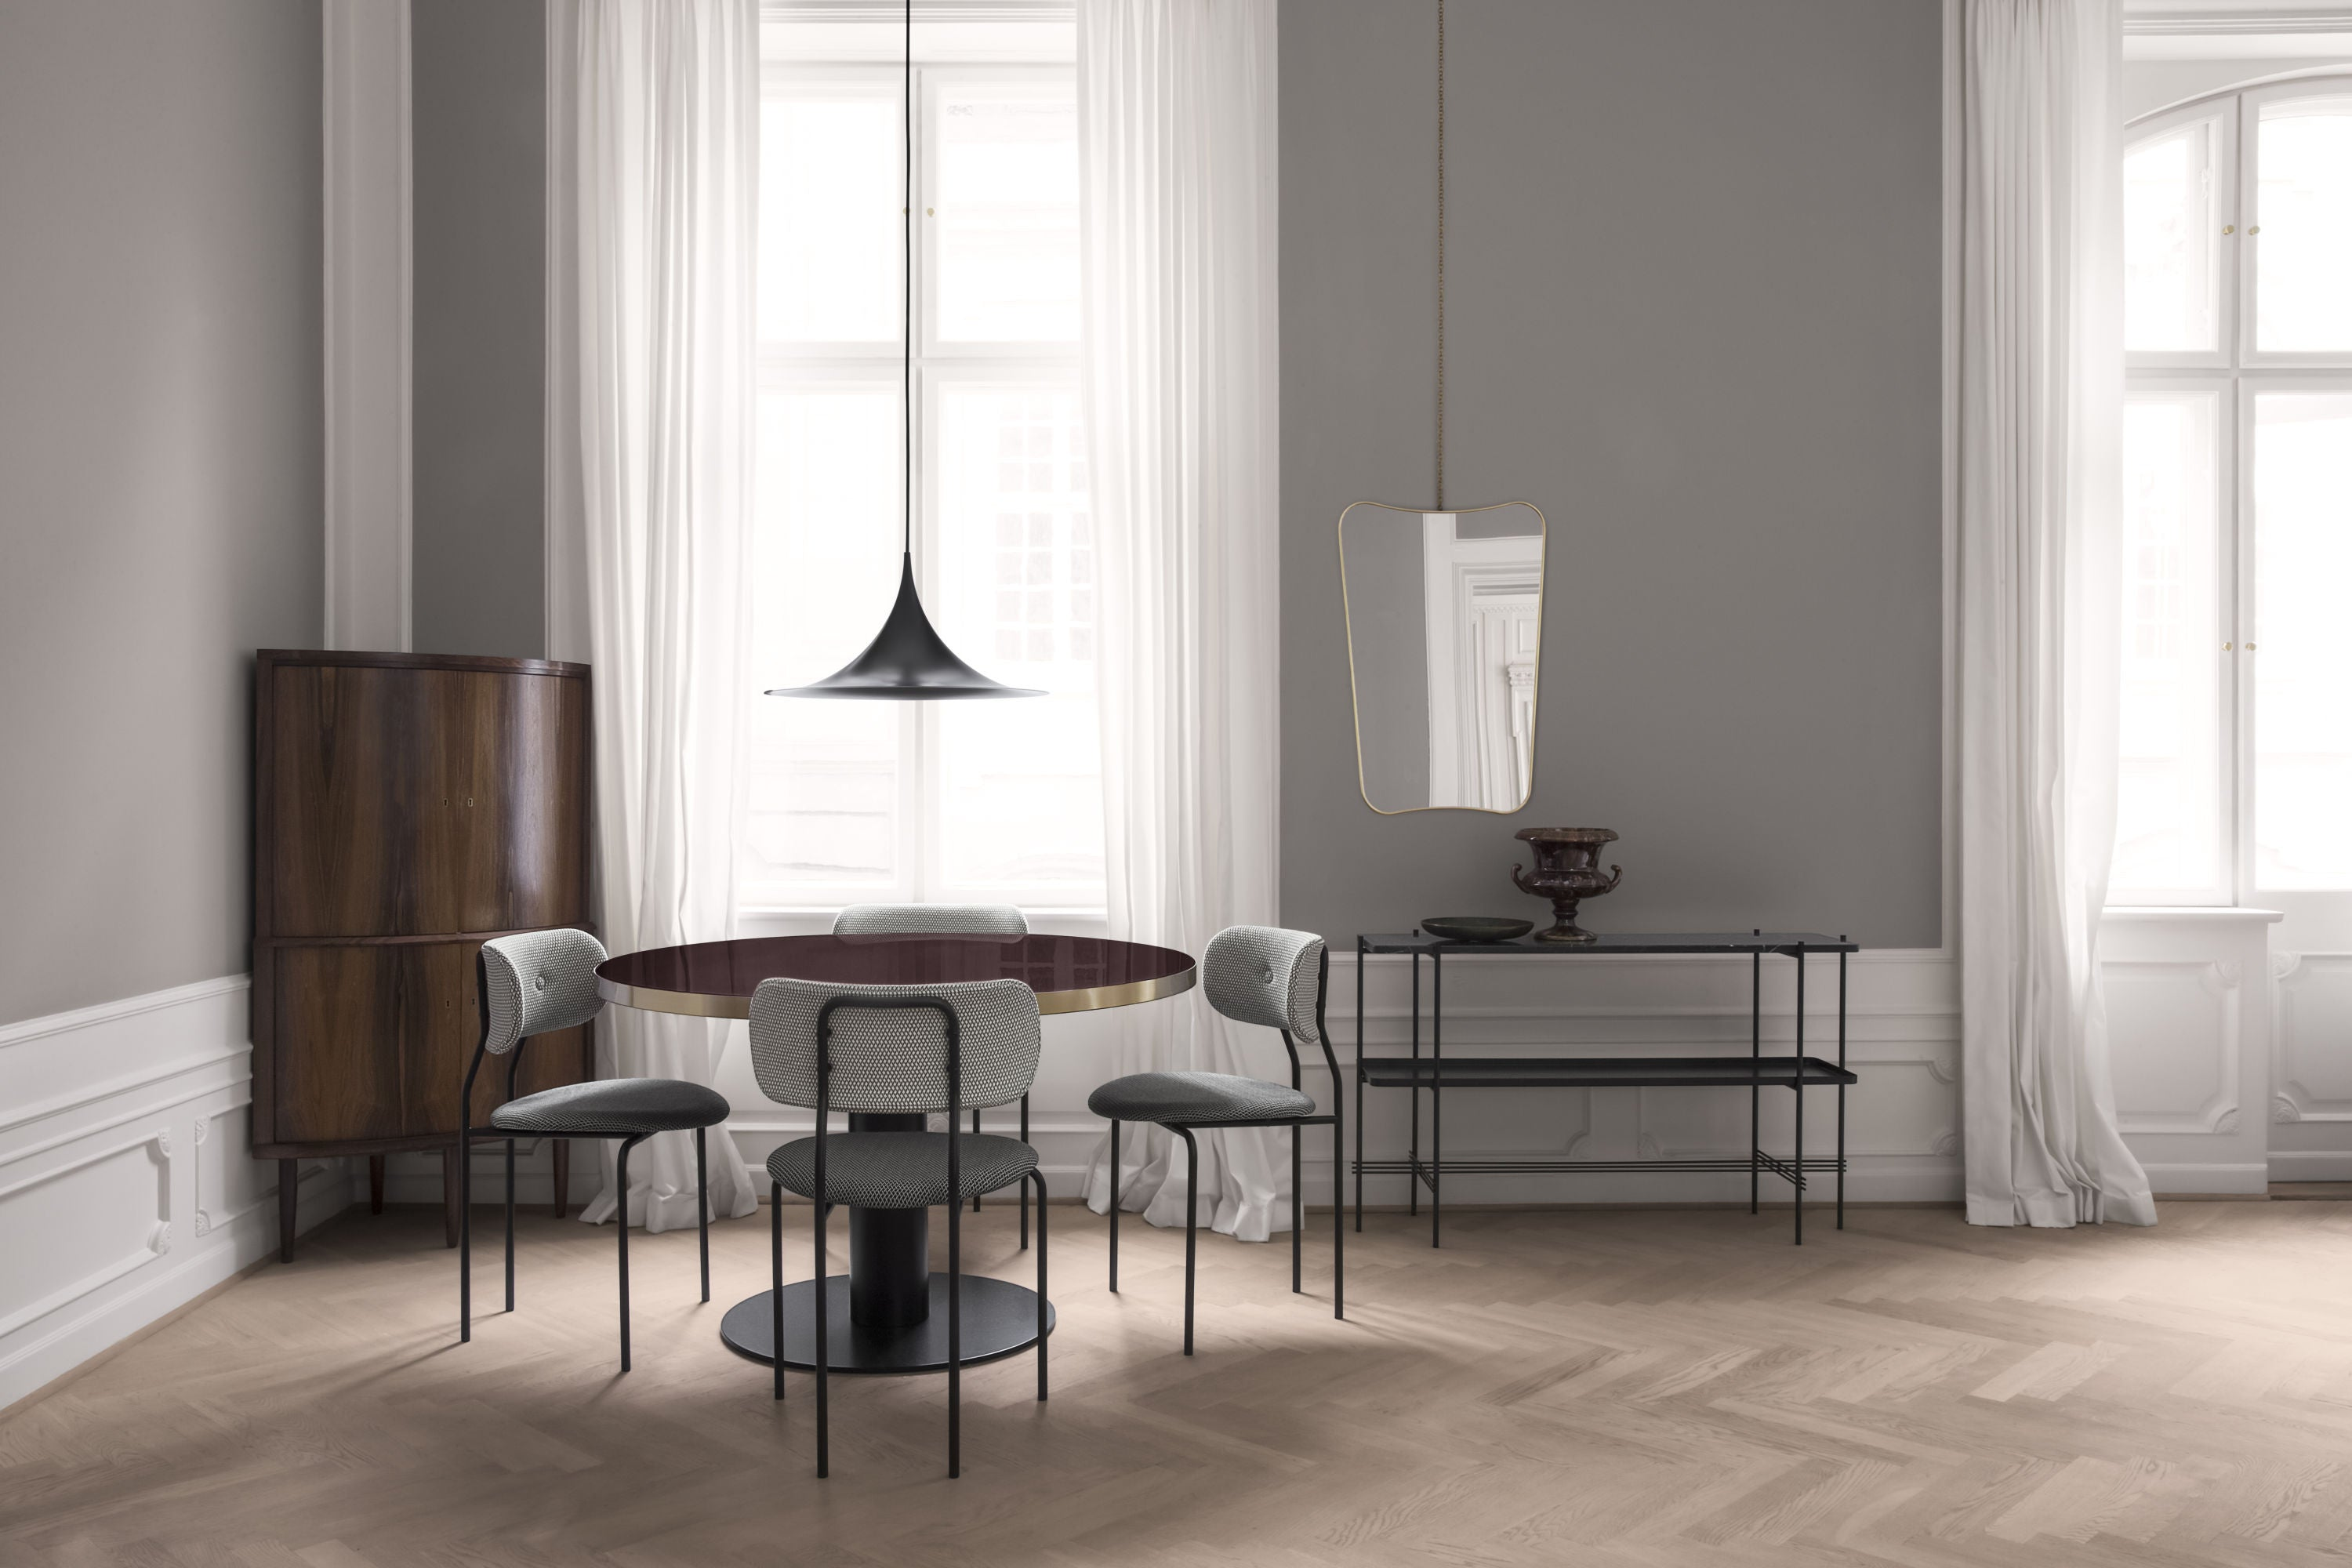 GUBI 2.0 Dining Table - Round - Dia 110 Brass Base, Marble White Top fra GUBI